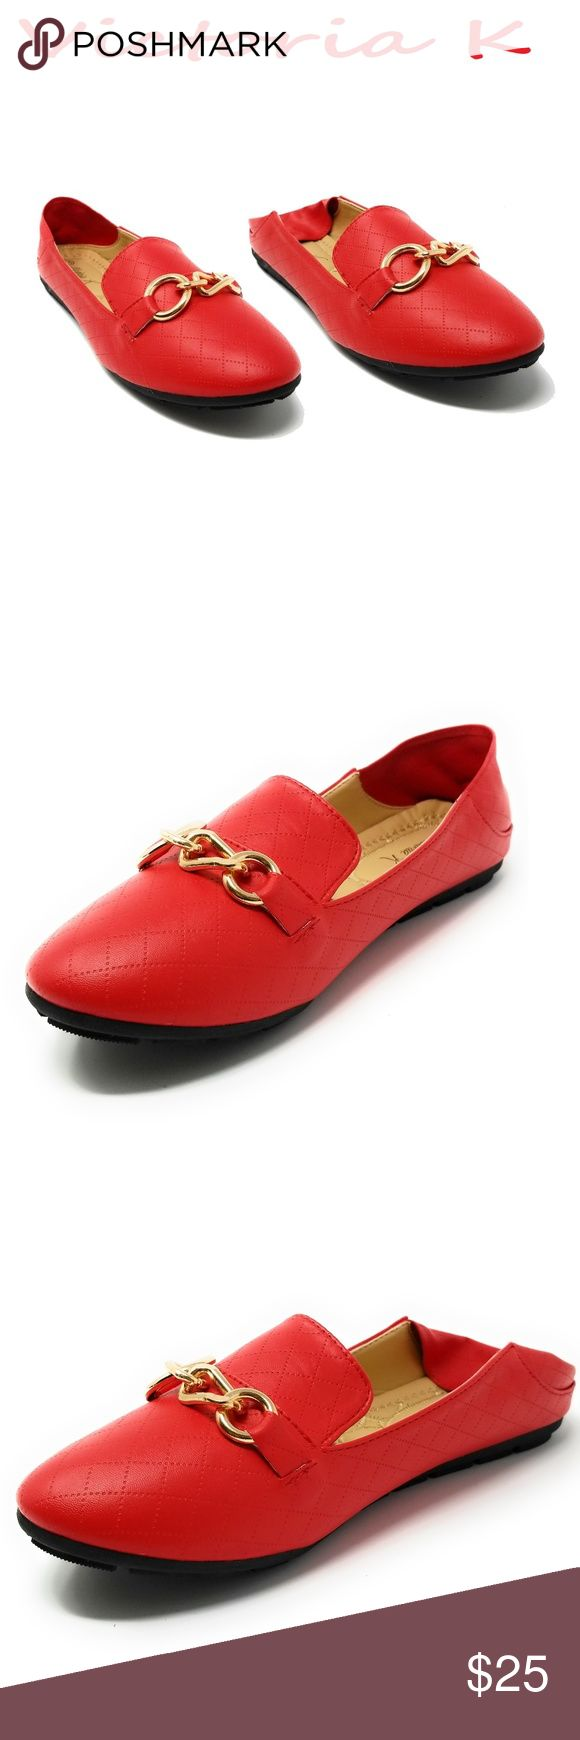 """Women Ballerina Flats / Mules, BS-2626, Red Brand new super popular stitched woman slippers that can be worn as mules with the back down. Extra soft insoles. Textured rubber outer sole for traction. Cute horse bit buckle. 100% man made PU vegan leather. Measurements: sizes 6 through 8 are true to size. Sizes 8.5 - 11 run small. Standard 3 inch width. Size 8 measures 9.5 inches, sz 8.5 = 9 3/4"""", sz 9 = 10"""", sz 10 = 10.5"""", size 11 fits a true size 9.5 wearer. Slip on these loafers and make a…"""